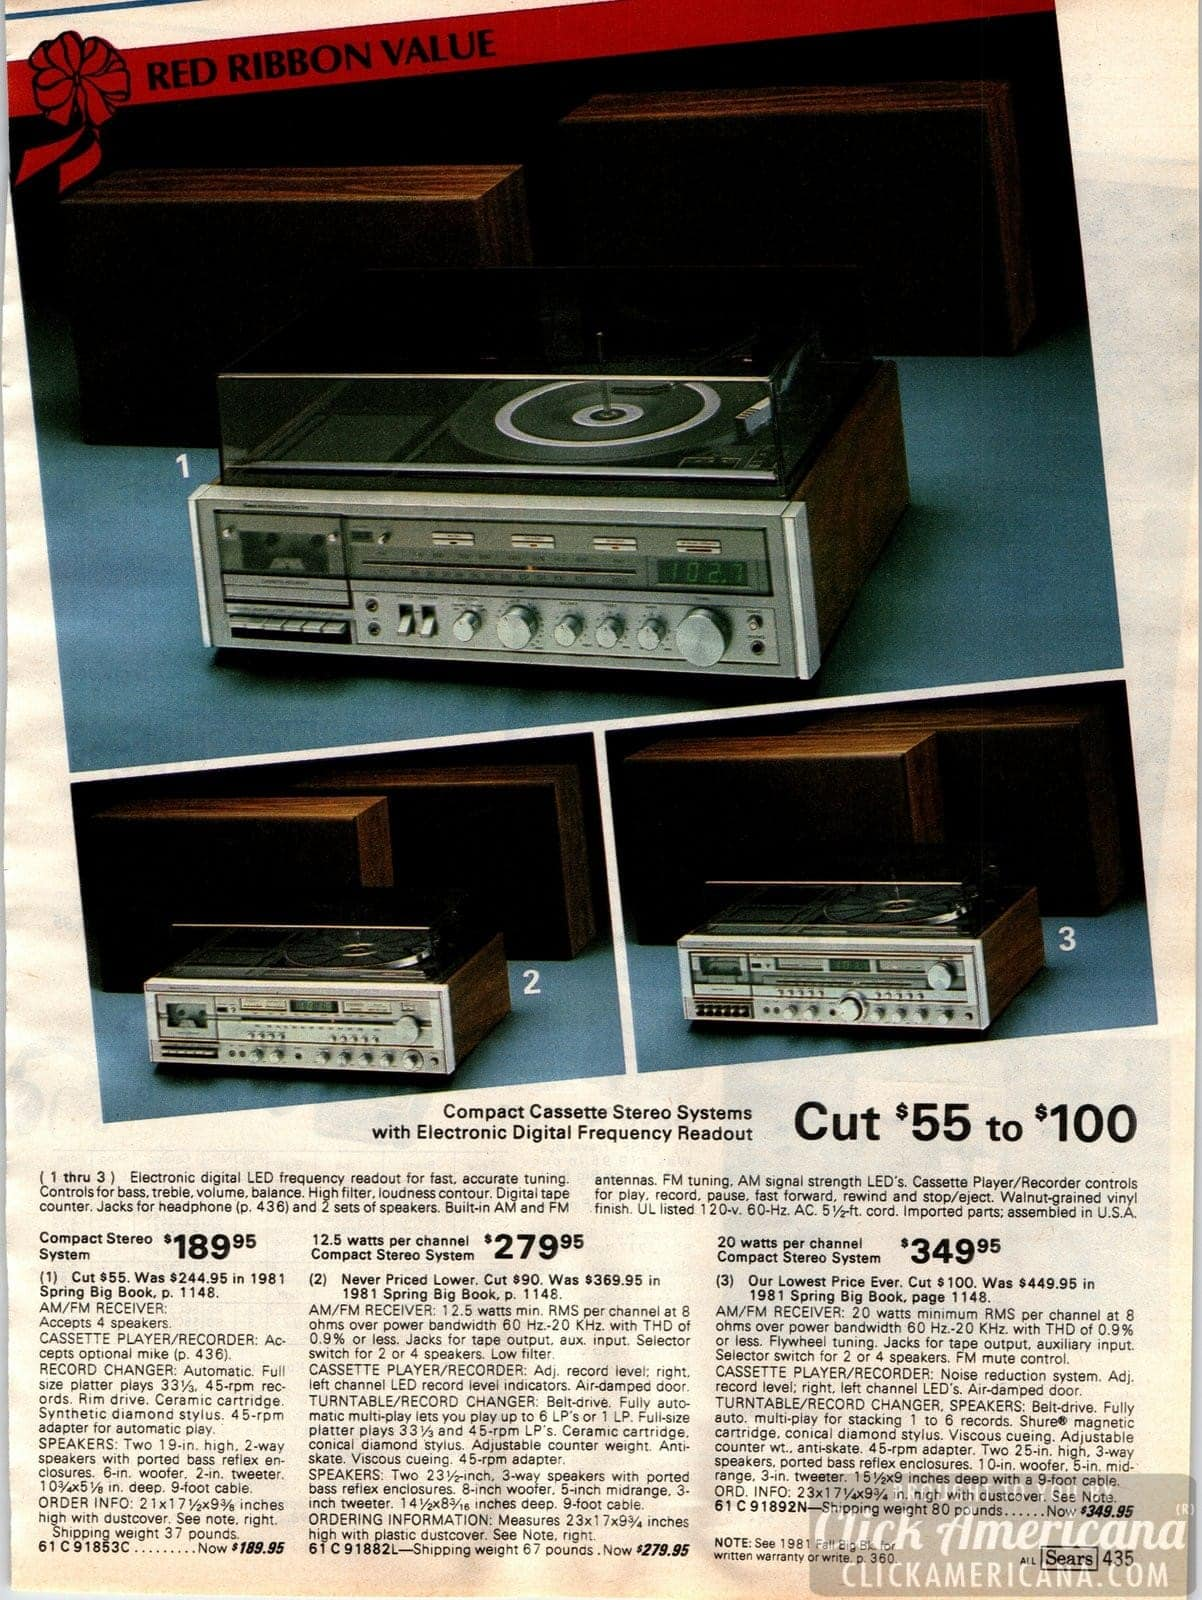 Compact cassette stereo systems from the '80s that feature turntables and cassette decks